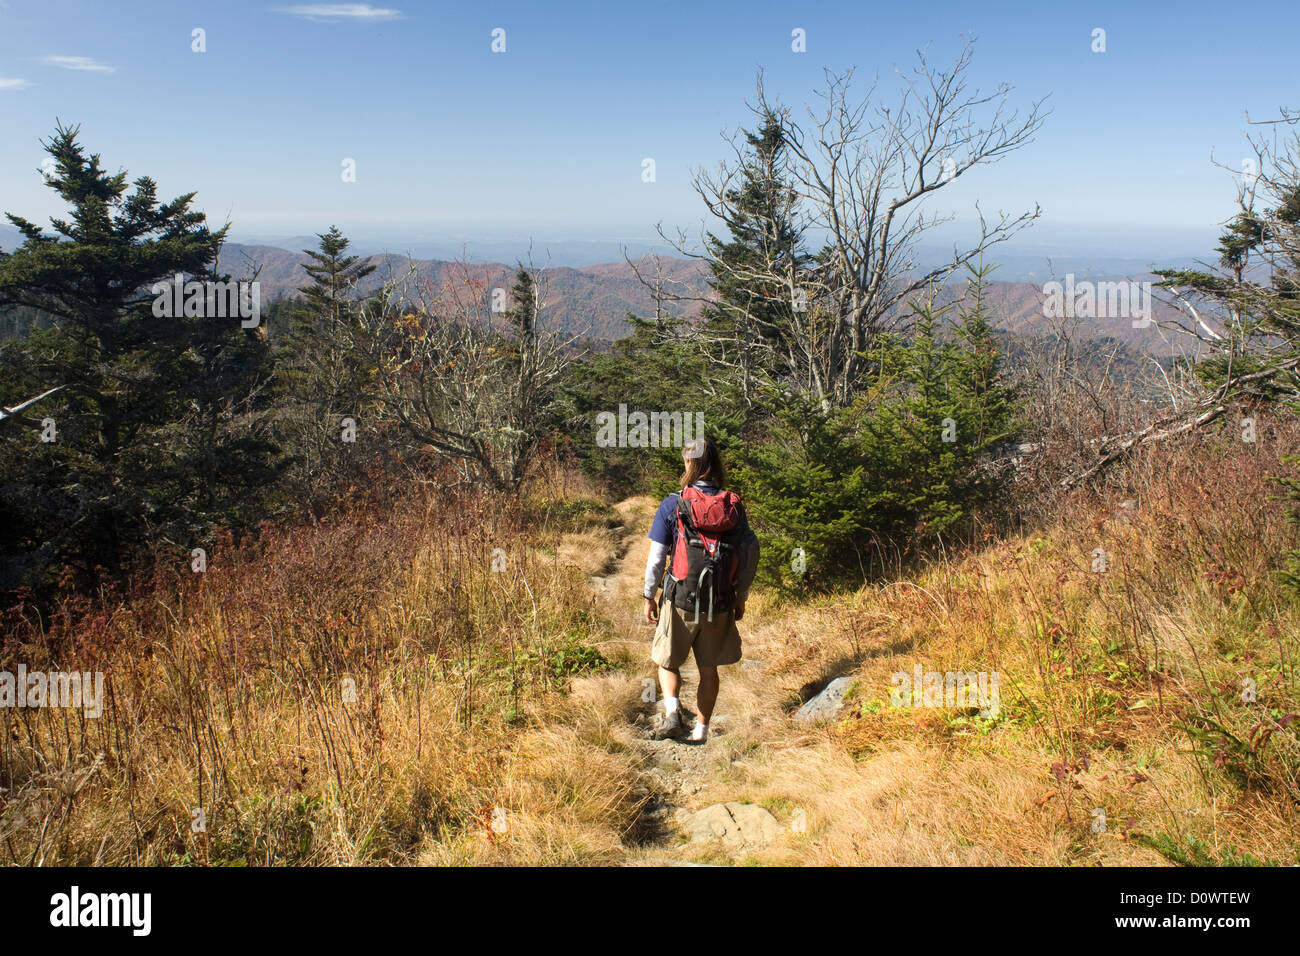 NORTH CAROLINA - Hiking the Appalachian Trail between Clingmans Dome and Double Springs in Smoky Mountains National - Stock Image